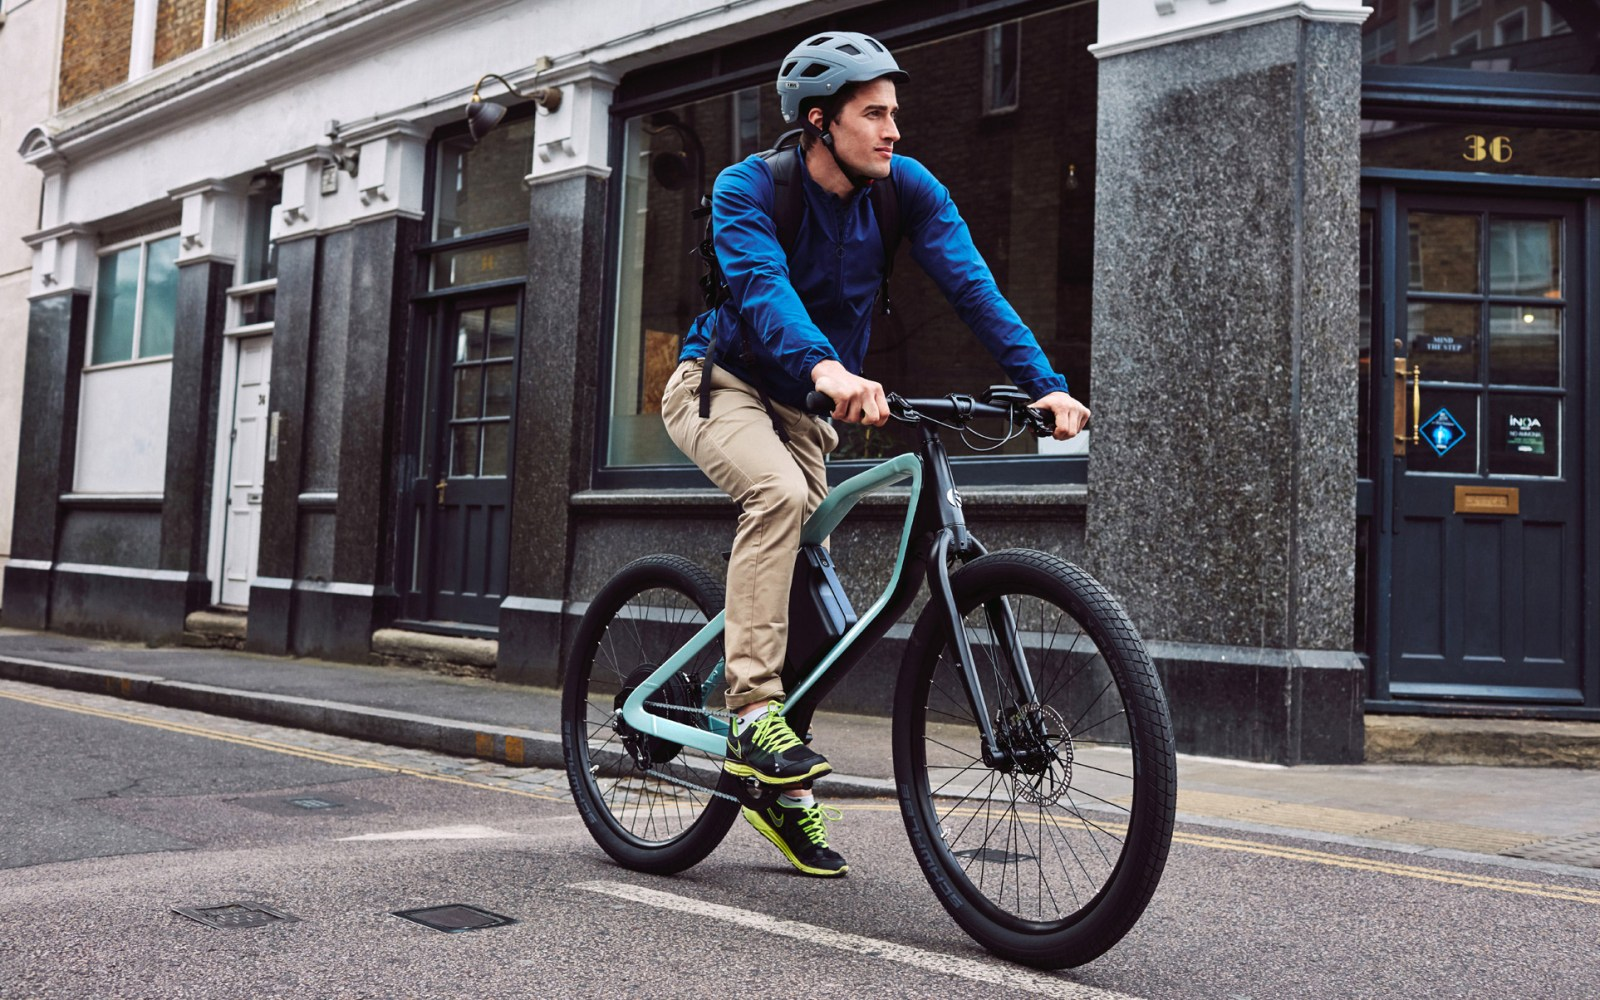 Klever has unveiled a new line of electric bikes with an ultra-quiet design and impressive speed